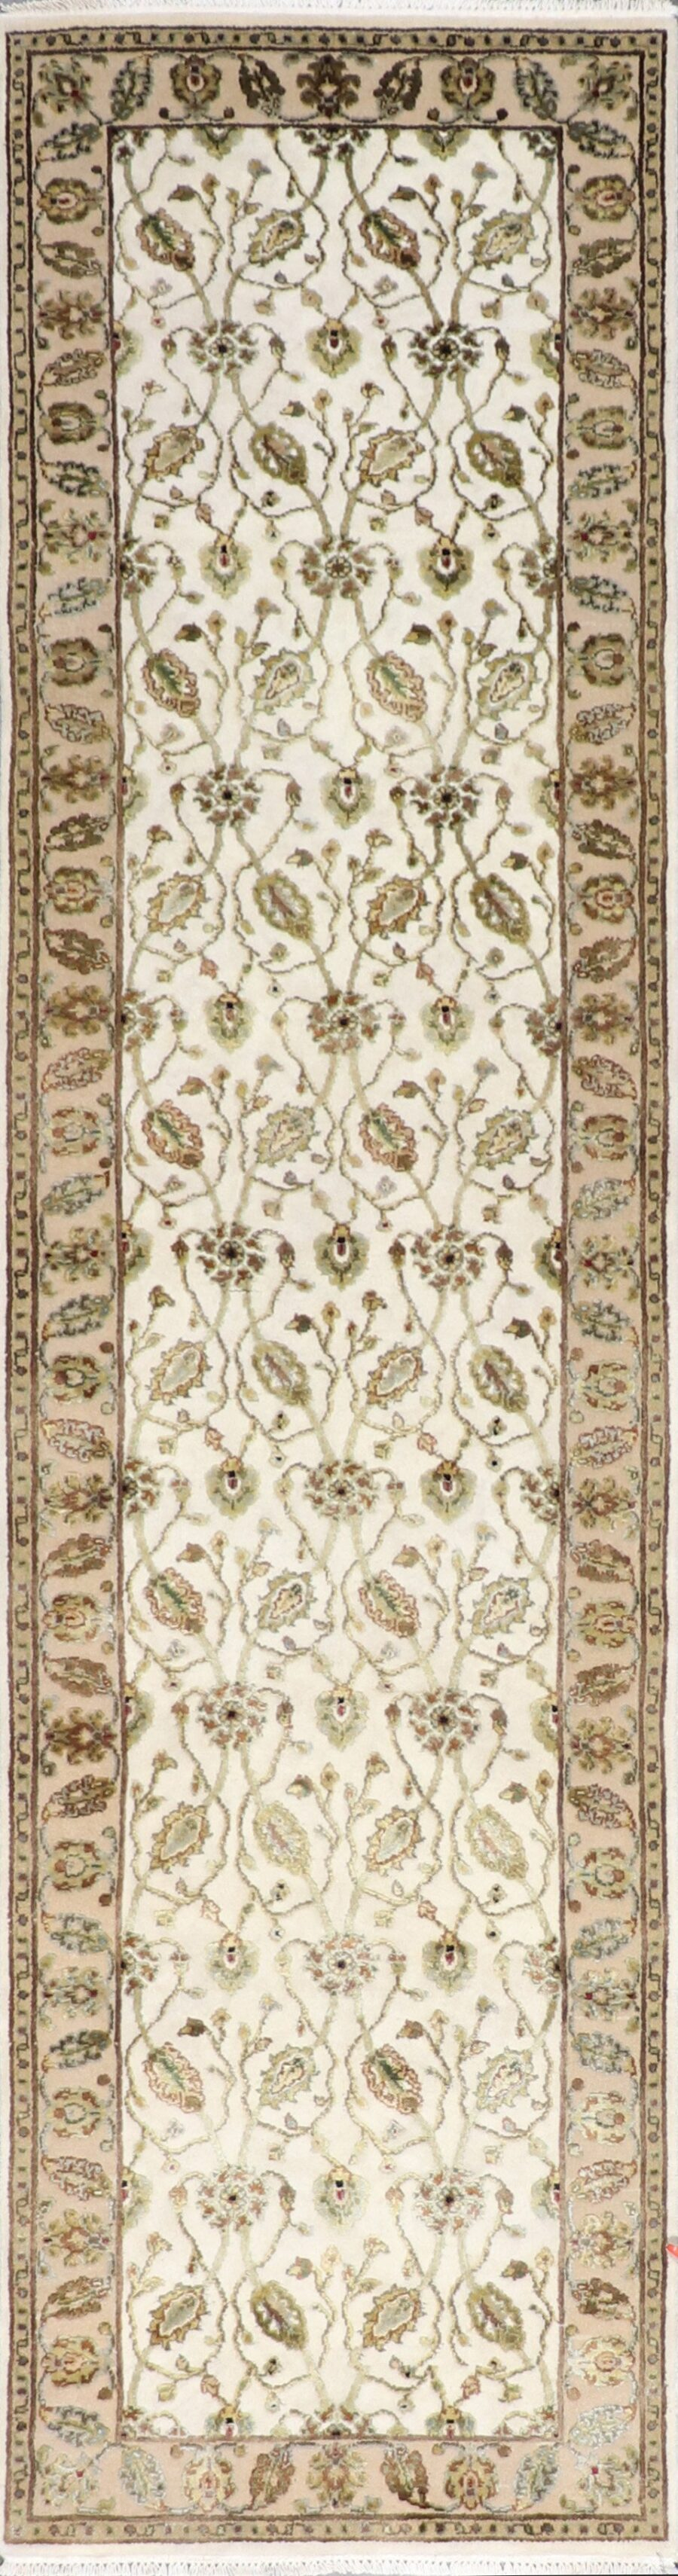 """2'6""""x10'2"""" Traditional Ivory Wool & Silk Hand-Knotted Rug - Direct Rug Import 